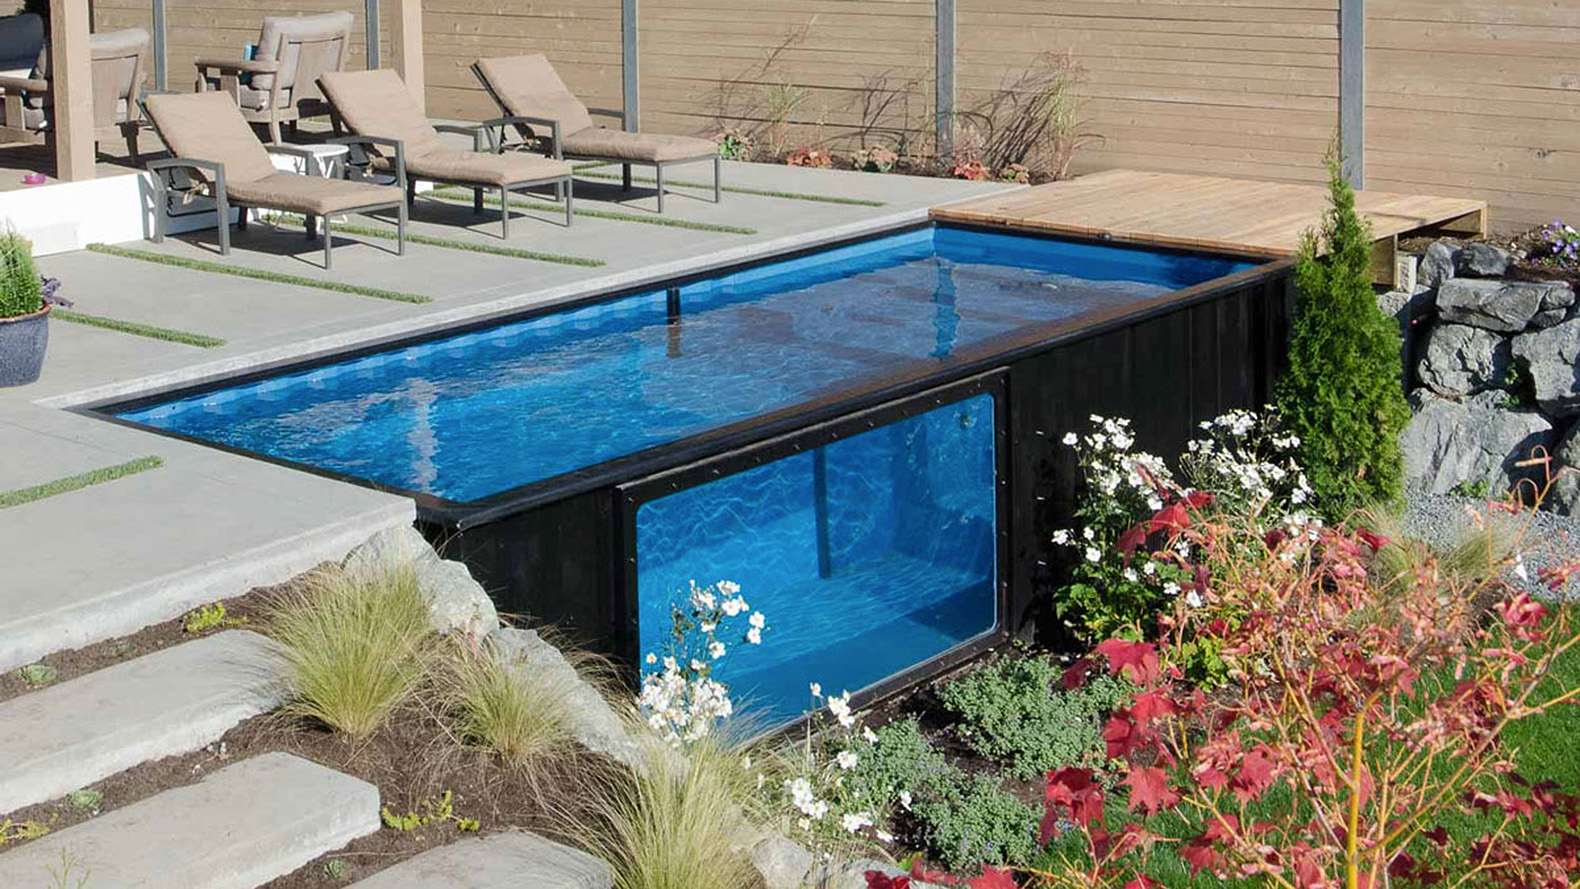 modpools turns shipping containers into amazing swimming pools inhabitat green design. Black Bedroom Furniture Sets. Home Design Ideas